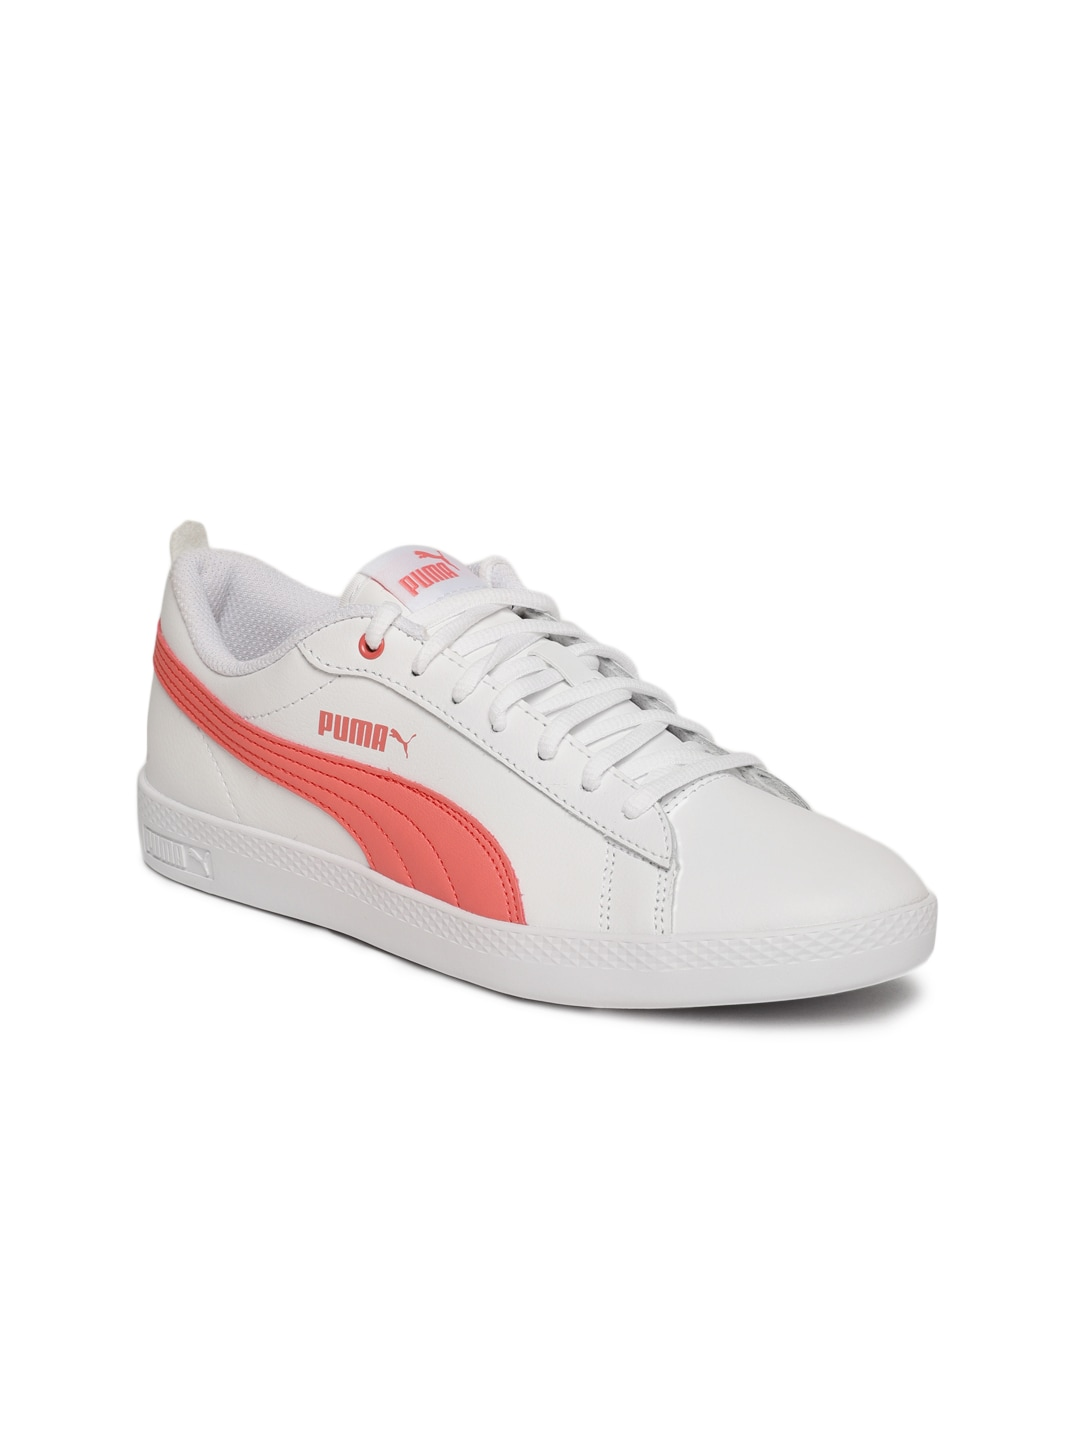 Casual Shoes For Women - Buy Women s Casual Shoes Online from Myntra 75f3b66b5b